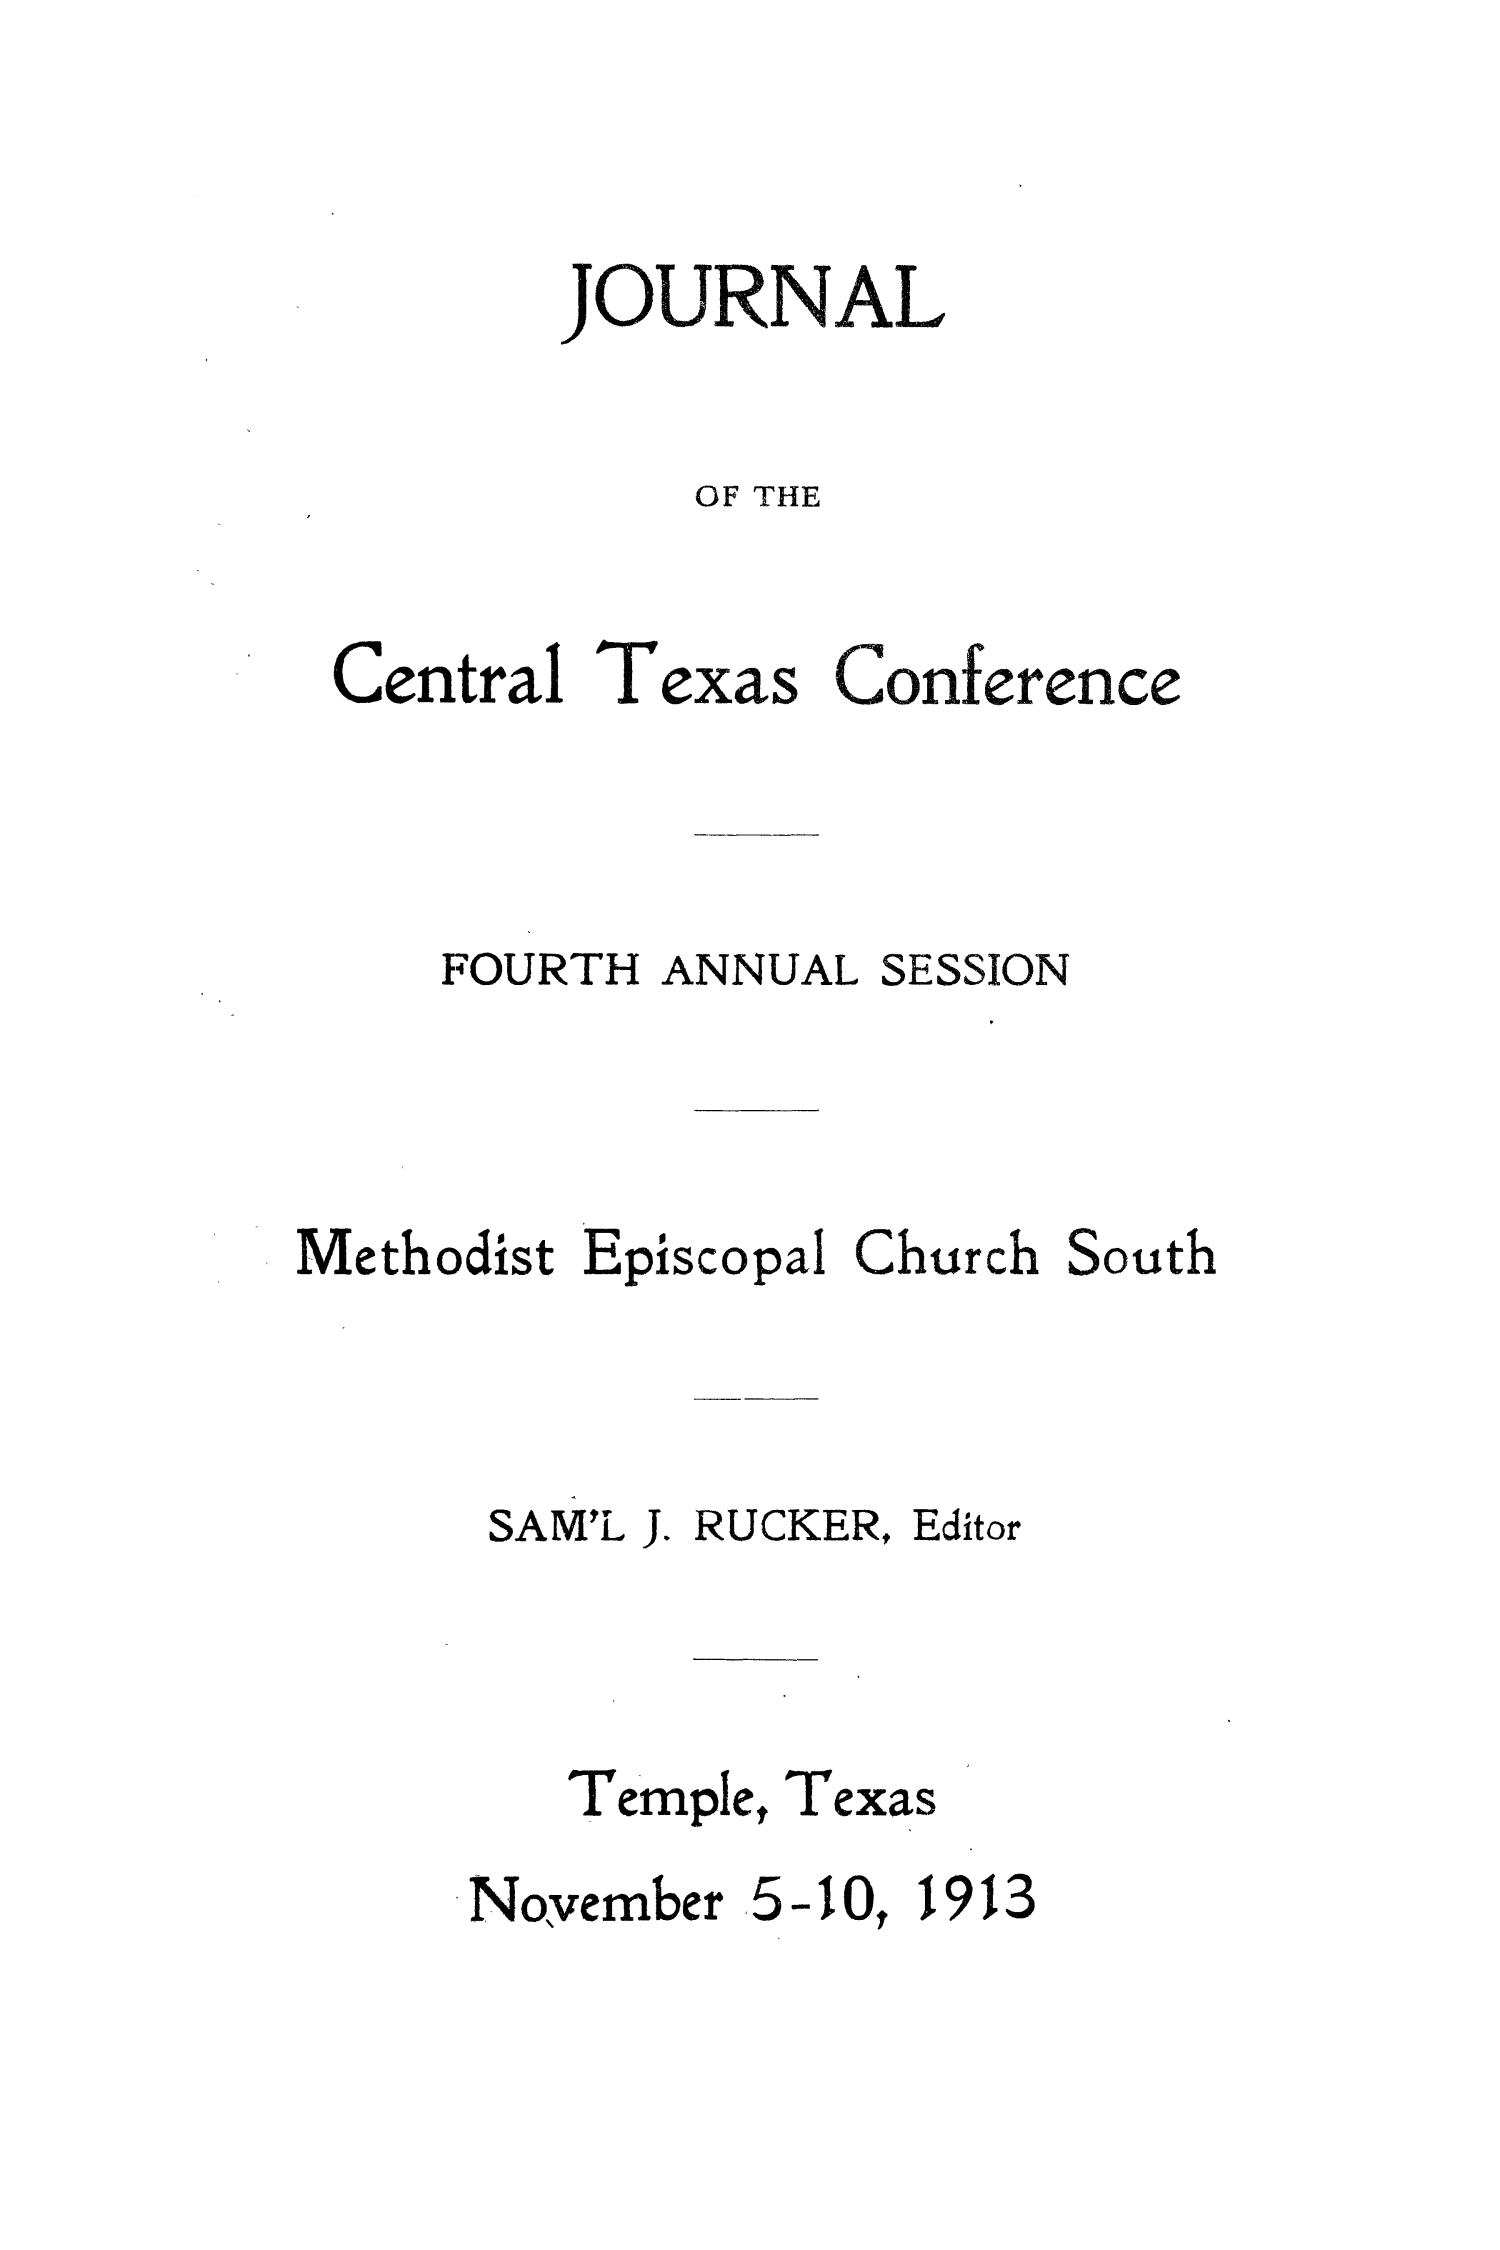 Journal of the Central Texas Conference, Fourth Annual Session, Methodist Episcopal Church South                                                                                                      1